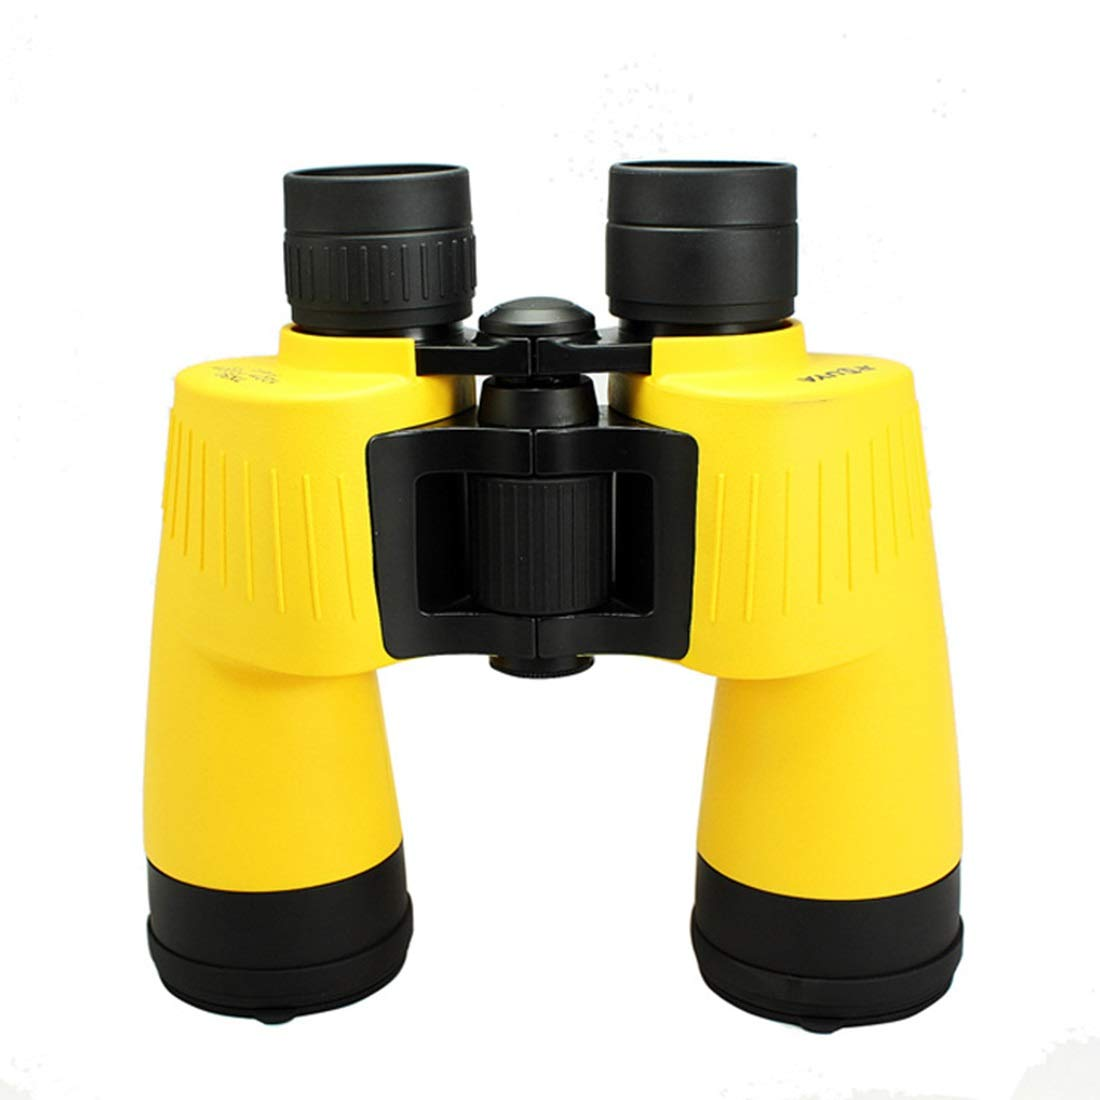 ZGQA-GQA 10x50 Compact HD Binoculars for Kids and Adults, Folding Spotting Telescope for Bird Watching Outdoor Camping, Best Gift for Boys,Girls for Adult (Color : Yellow) by ZGQA-GQA